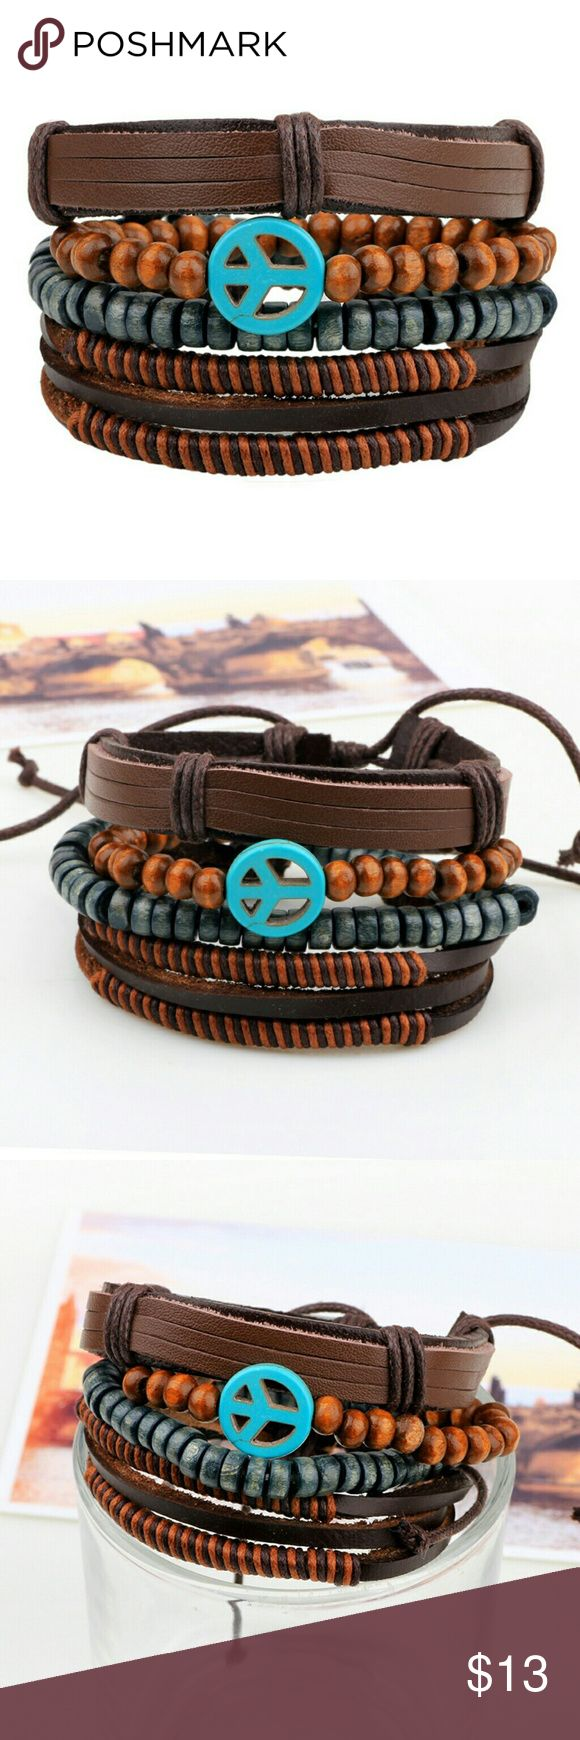 "4 pieces a set Fashion Jewelry Bracelets Vintage Peace sign Bracelets   Feature: fashion, vintage, peace sign  Material: leather, coconut beads, braid belt   Specifications: 2.5"" in dia, 7""-8"" in length, adjustable size    Makes a great gift for friend and family or self purchase Jewelry Bracelets"